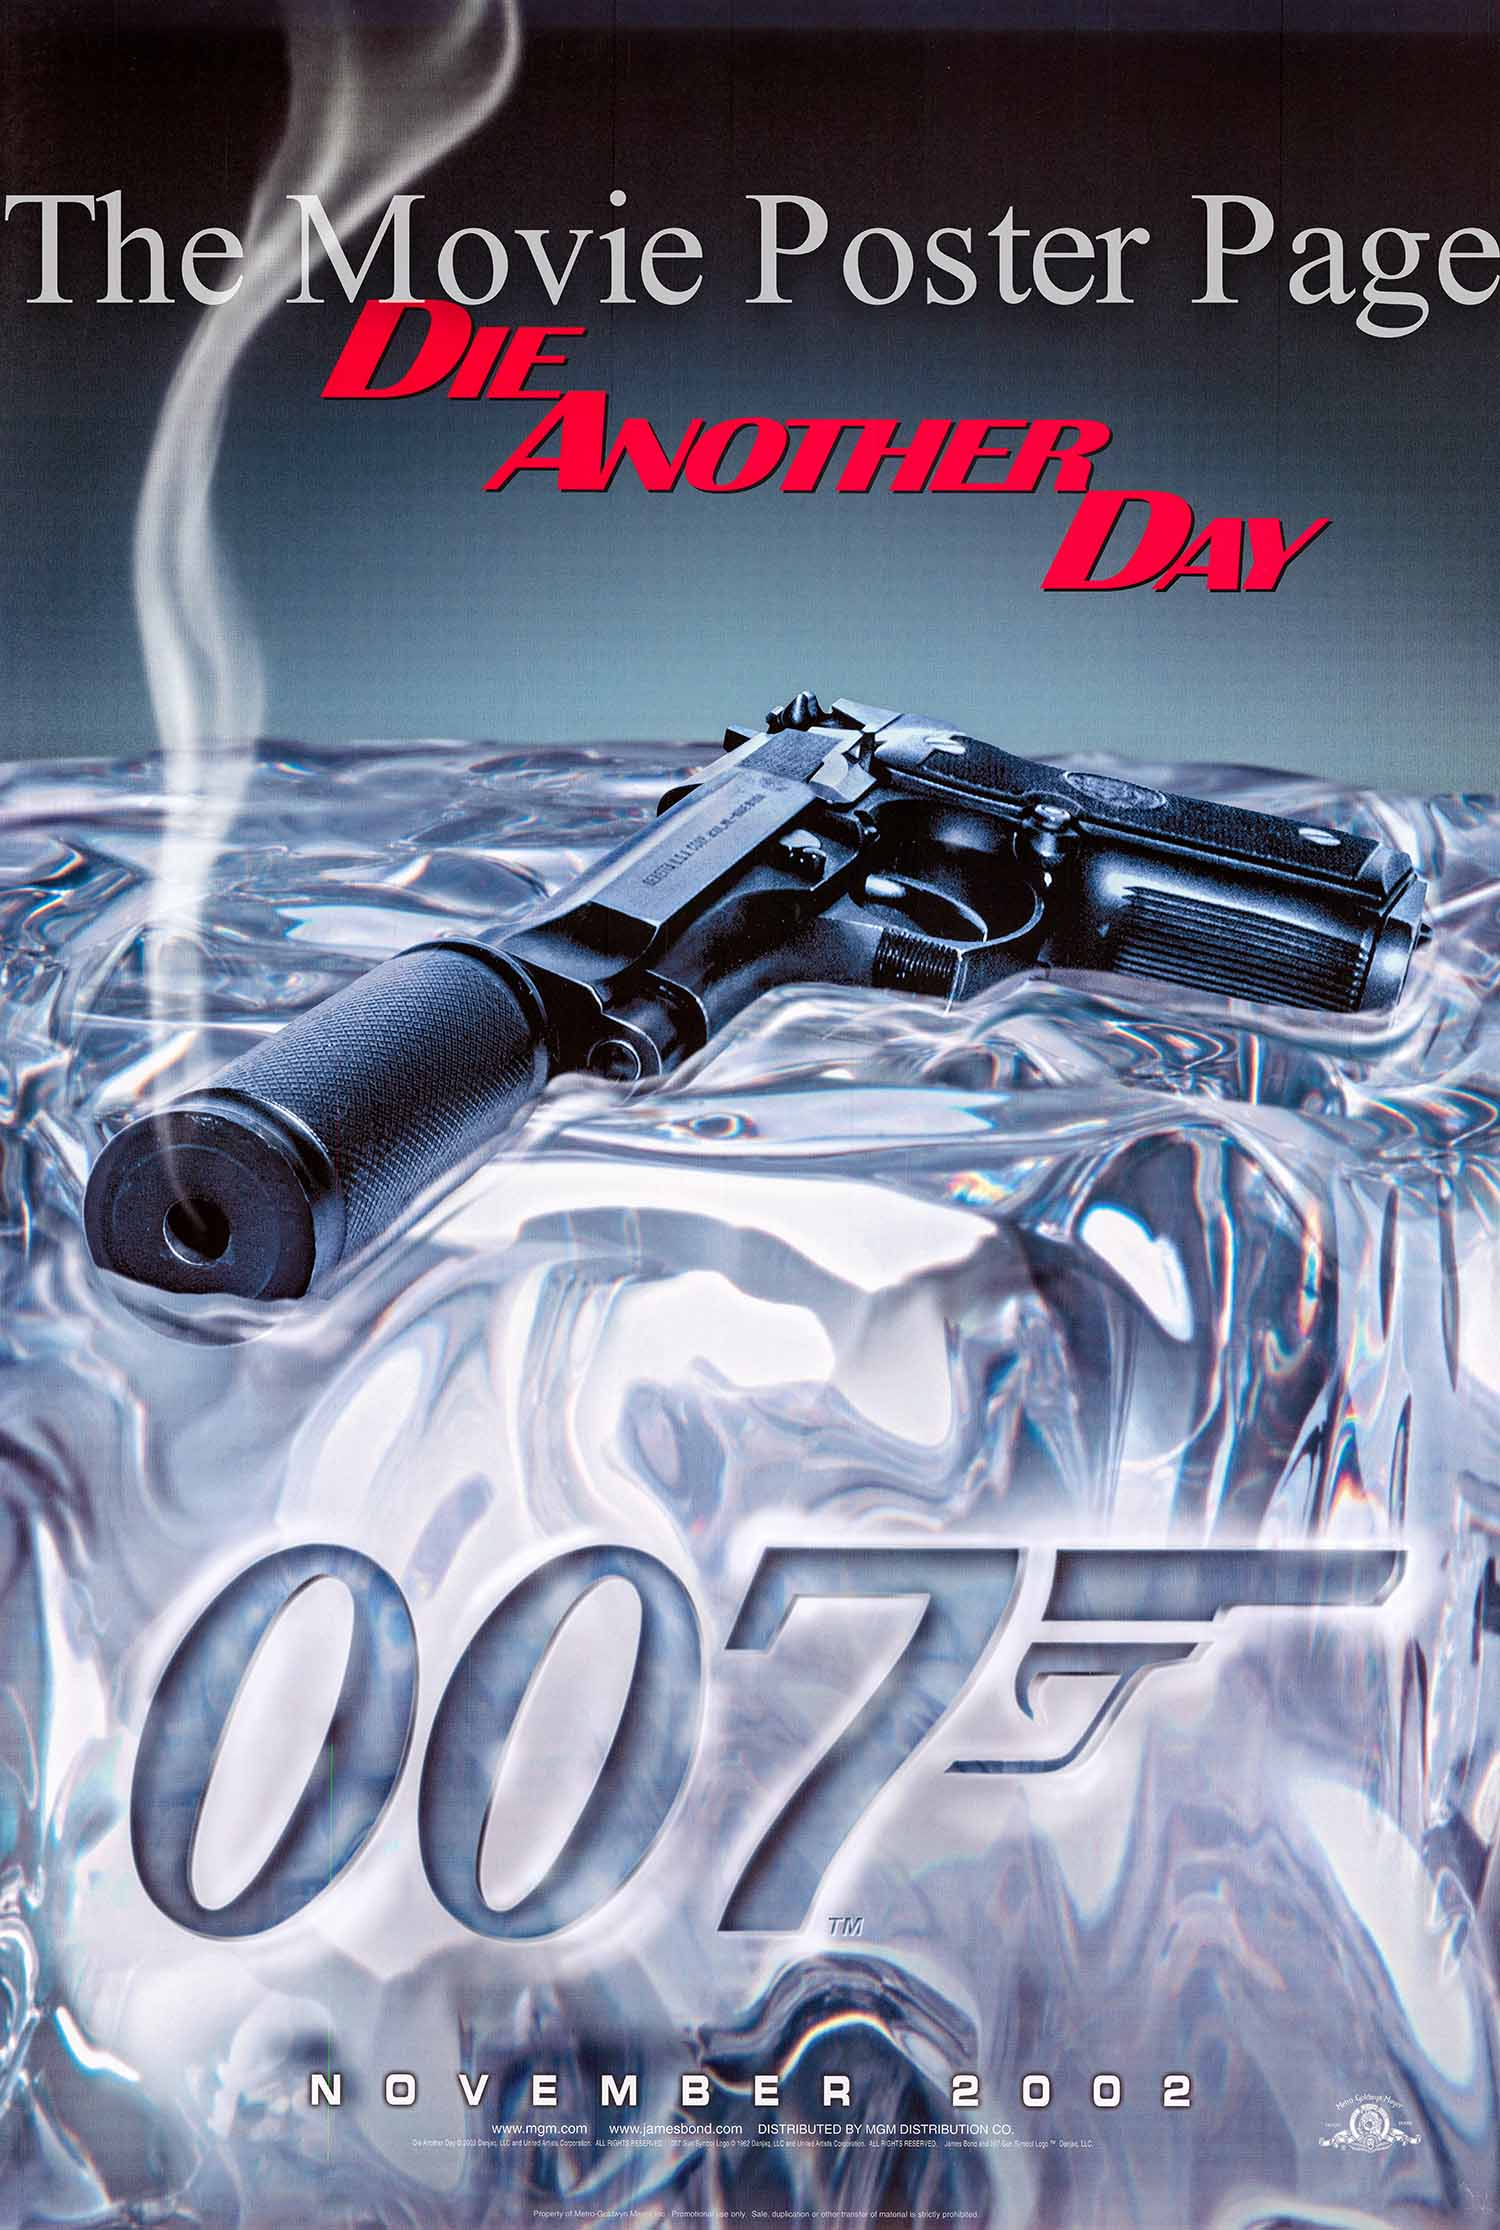 Pictured is an advance one-sheet poster made to promote the 2002 Lee Tamahori film Die another Day starring Pierce Brosnan as James Bond.